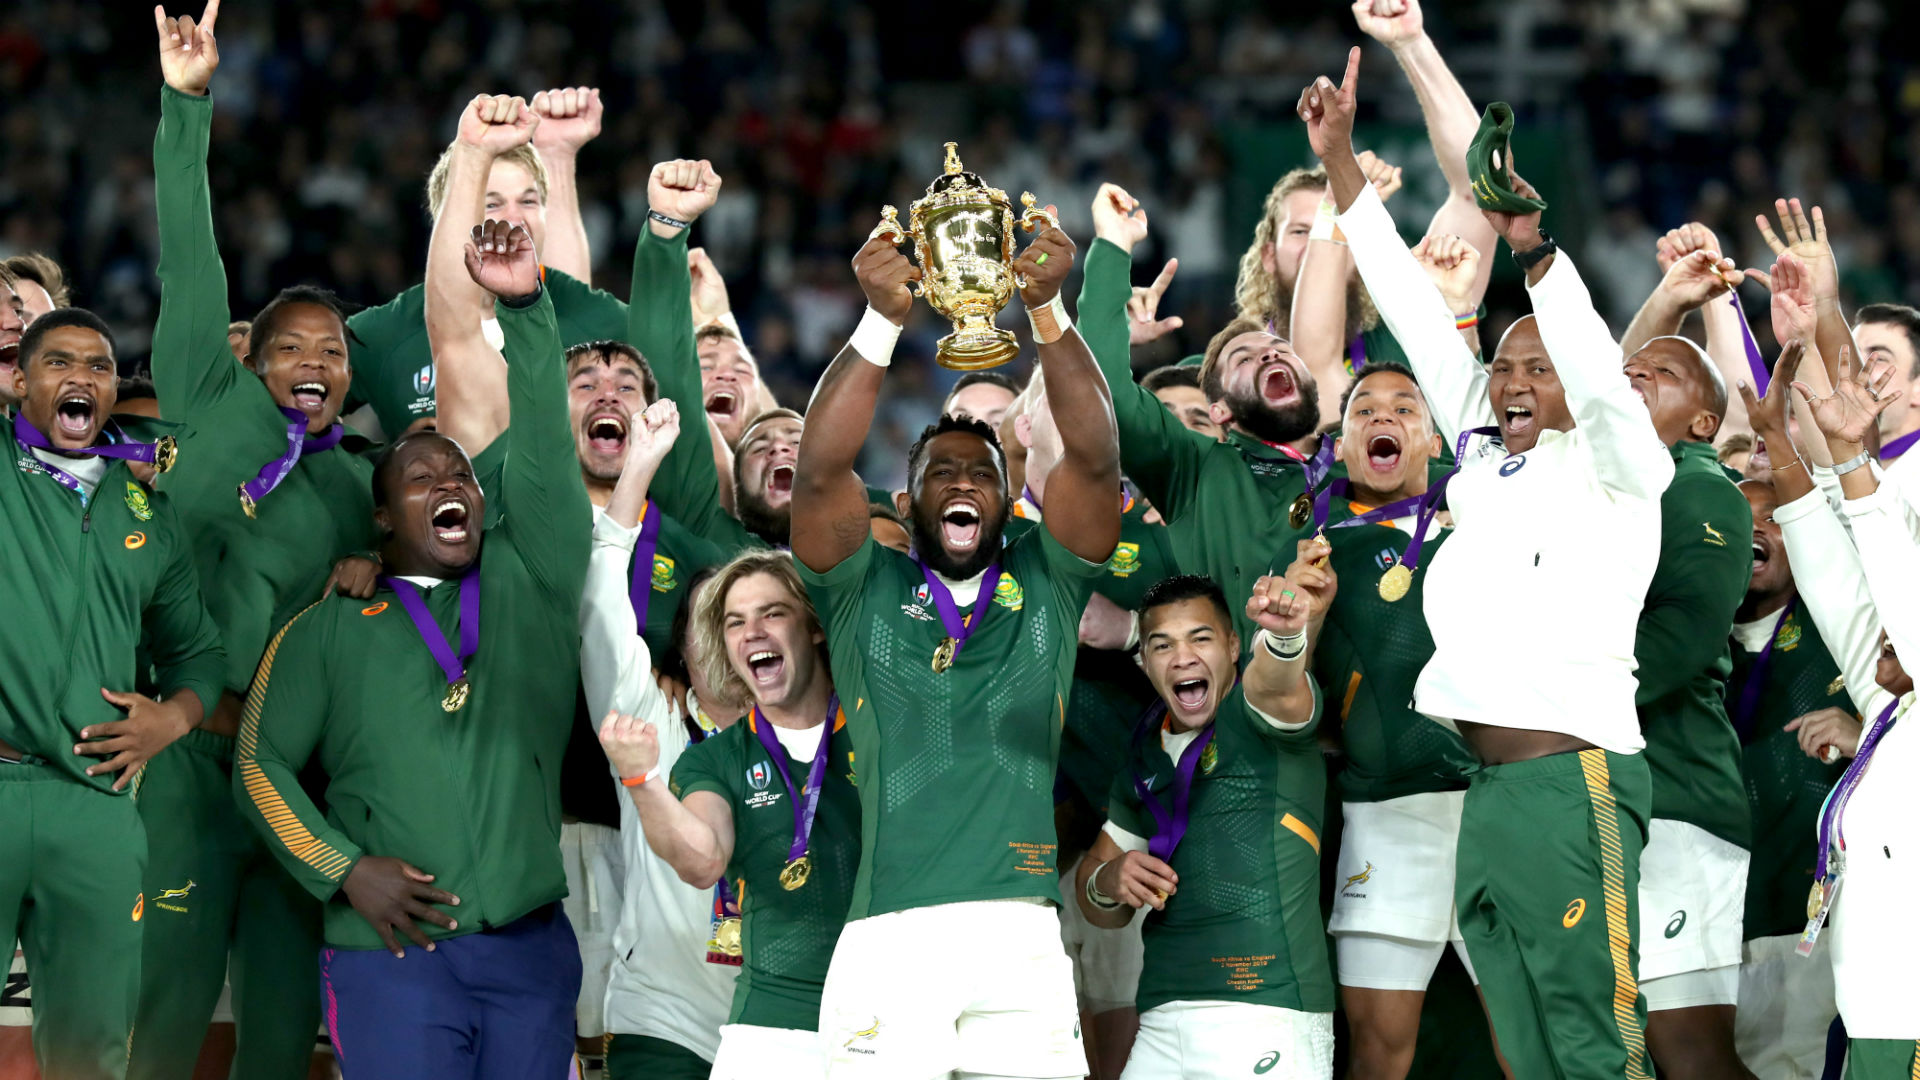 Rugby World Cup 2019: Kolisi says RWC win shows South Africa can 'achieve anything if we work together'